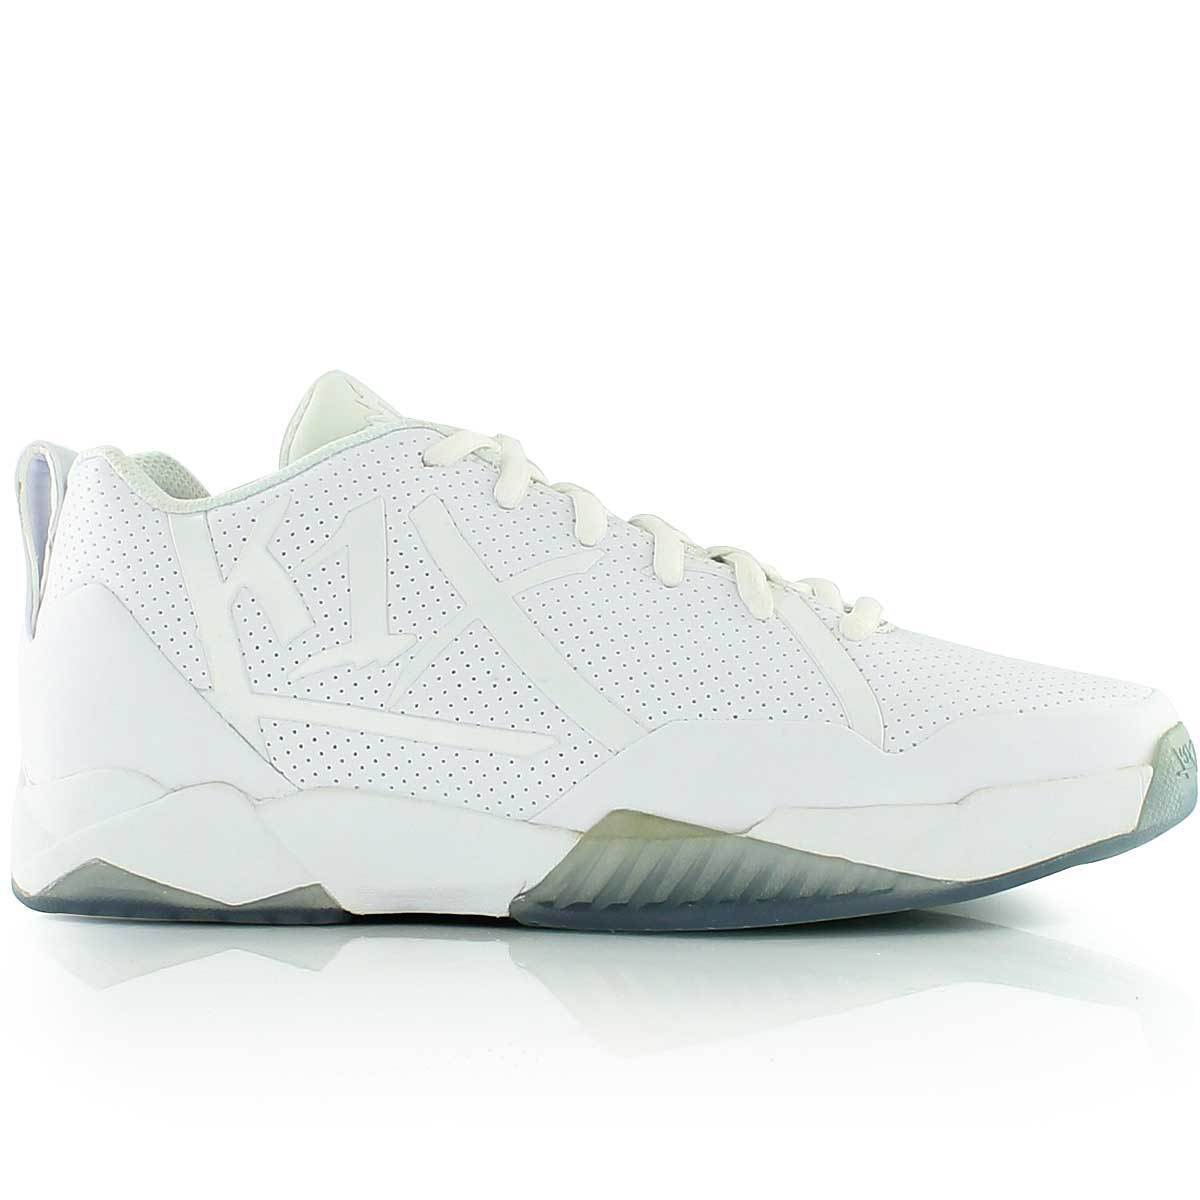 K1X Paradoxum White Ice Basketball shoes White Low Cut